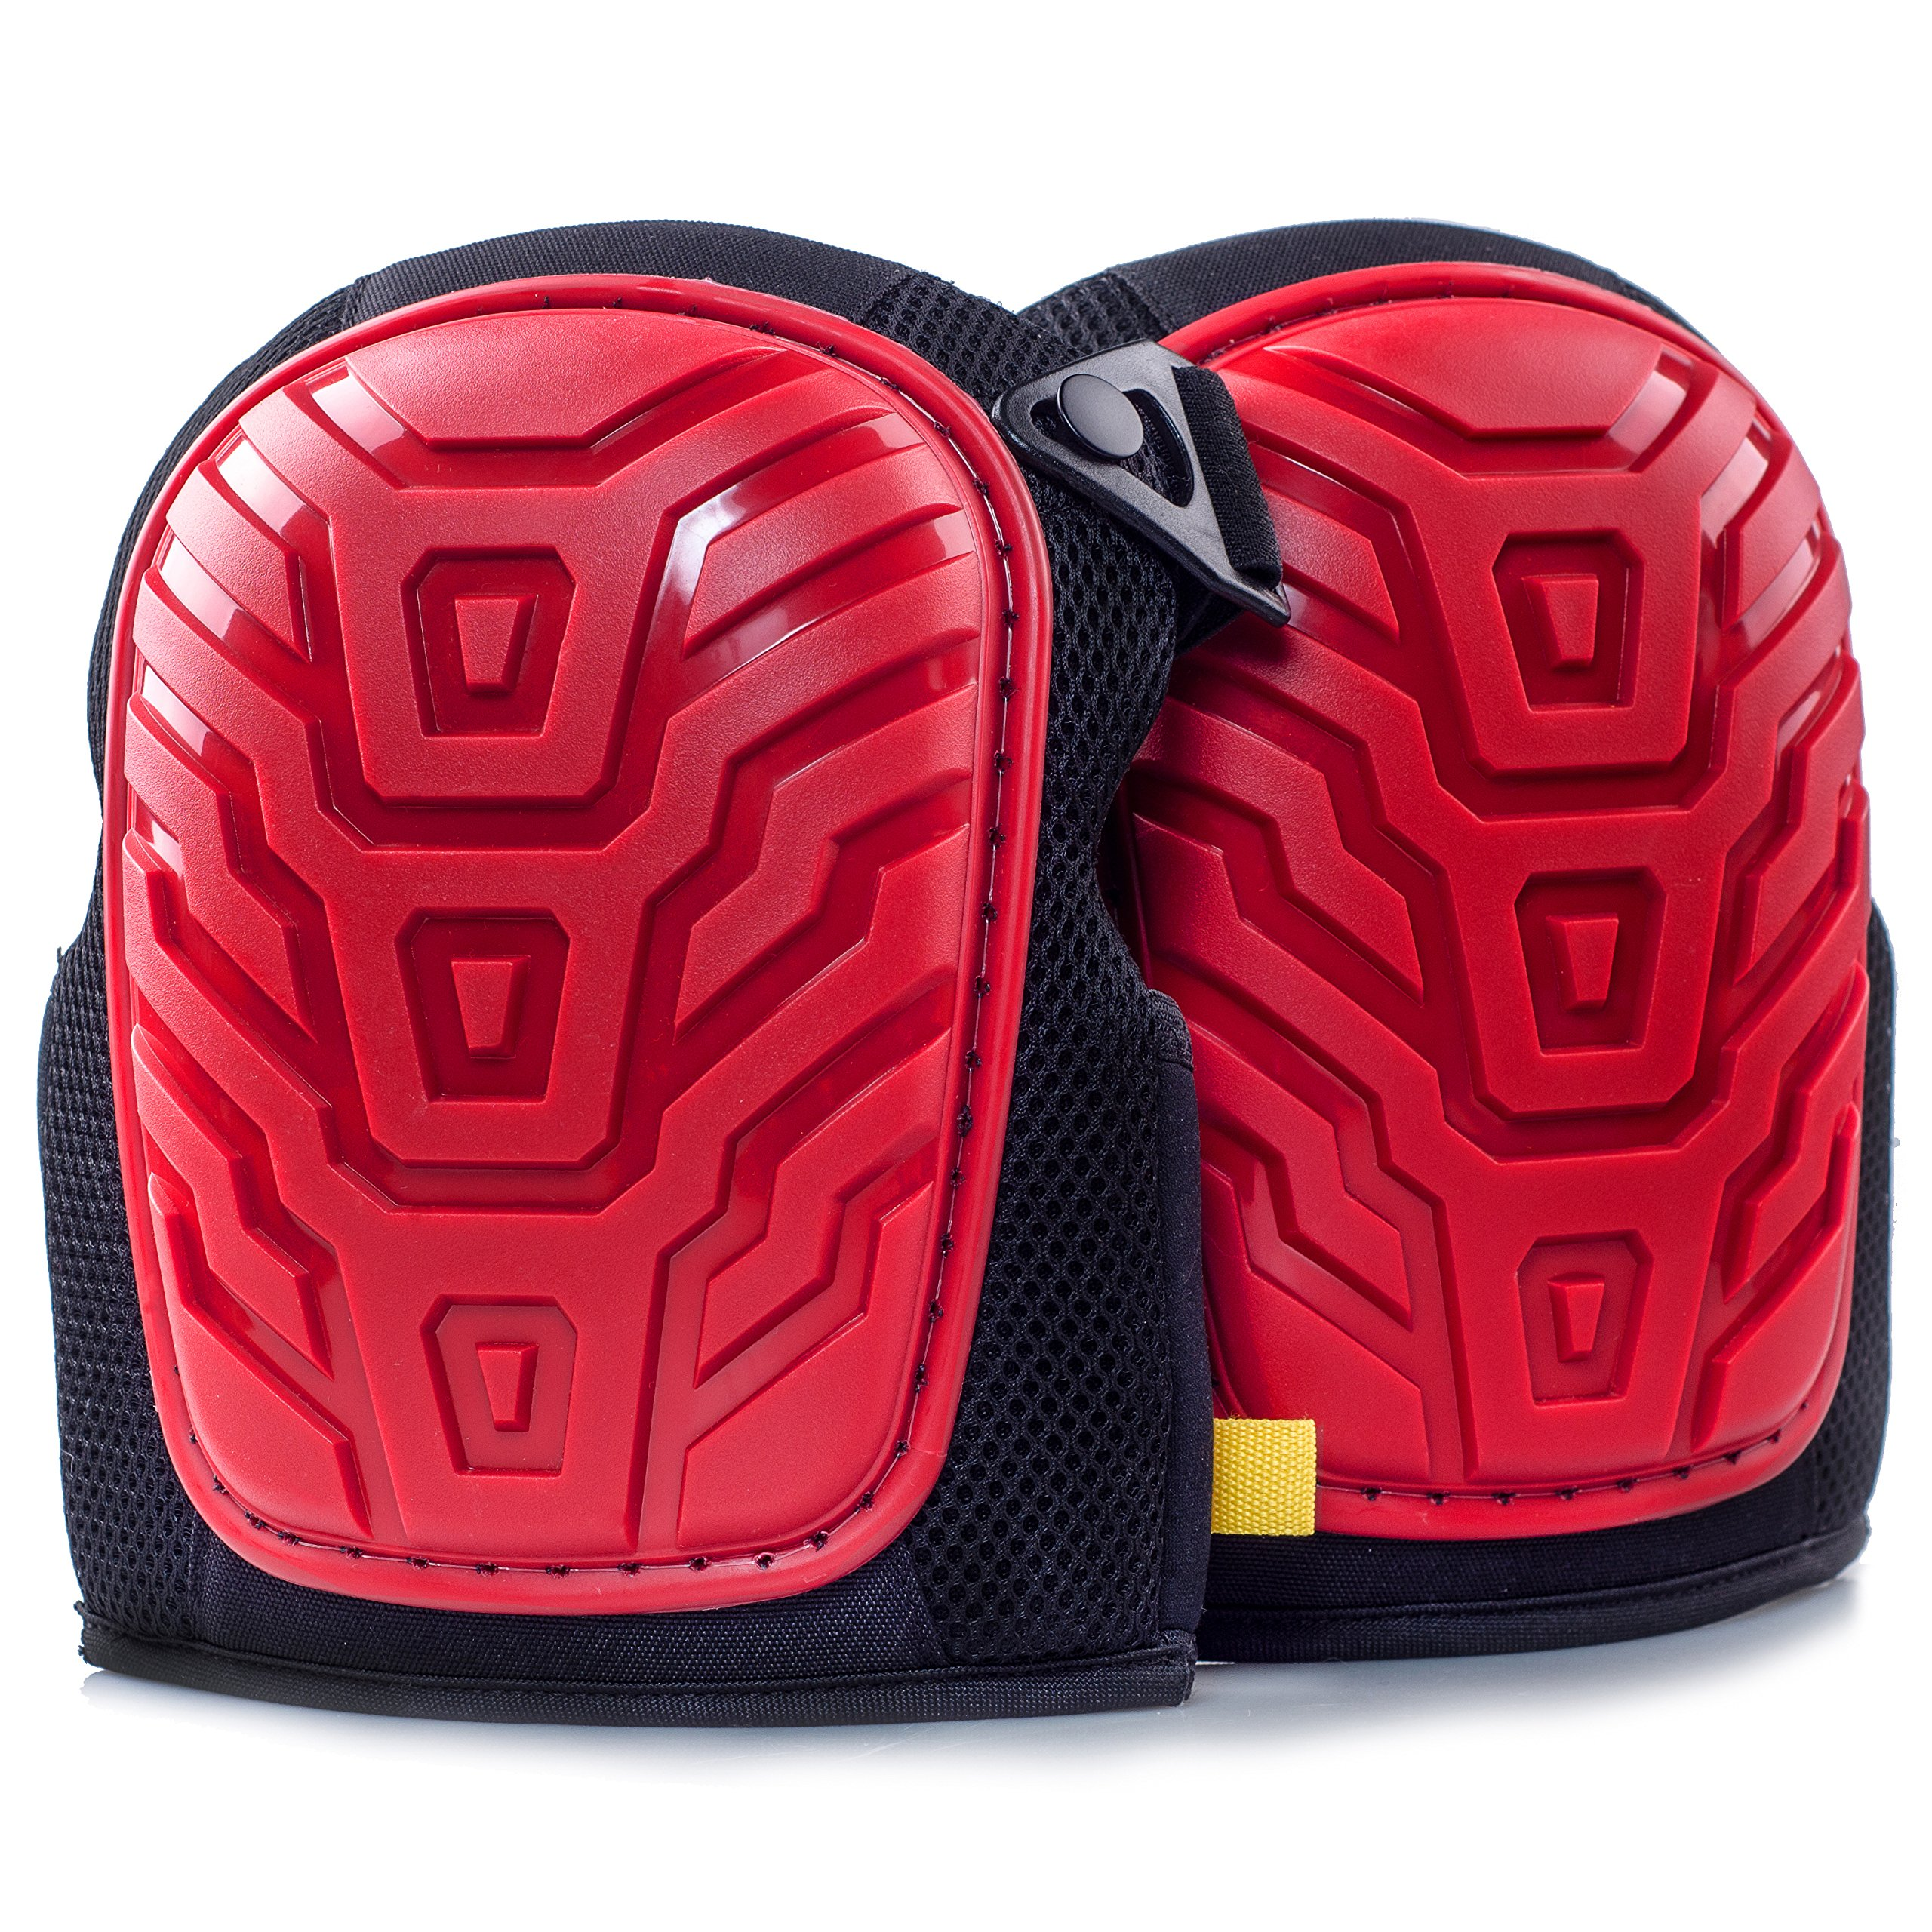 Professional Knee Pads - Easy to WEAR Heavy Duty Memory Foam Padding, Comfortable Gel Cushion, Strong Straps FITS All, Adjustable Easy-Fix Clips - Best for Gardening, Construction, Flooring